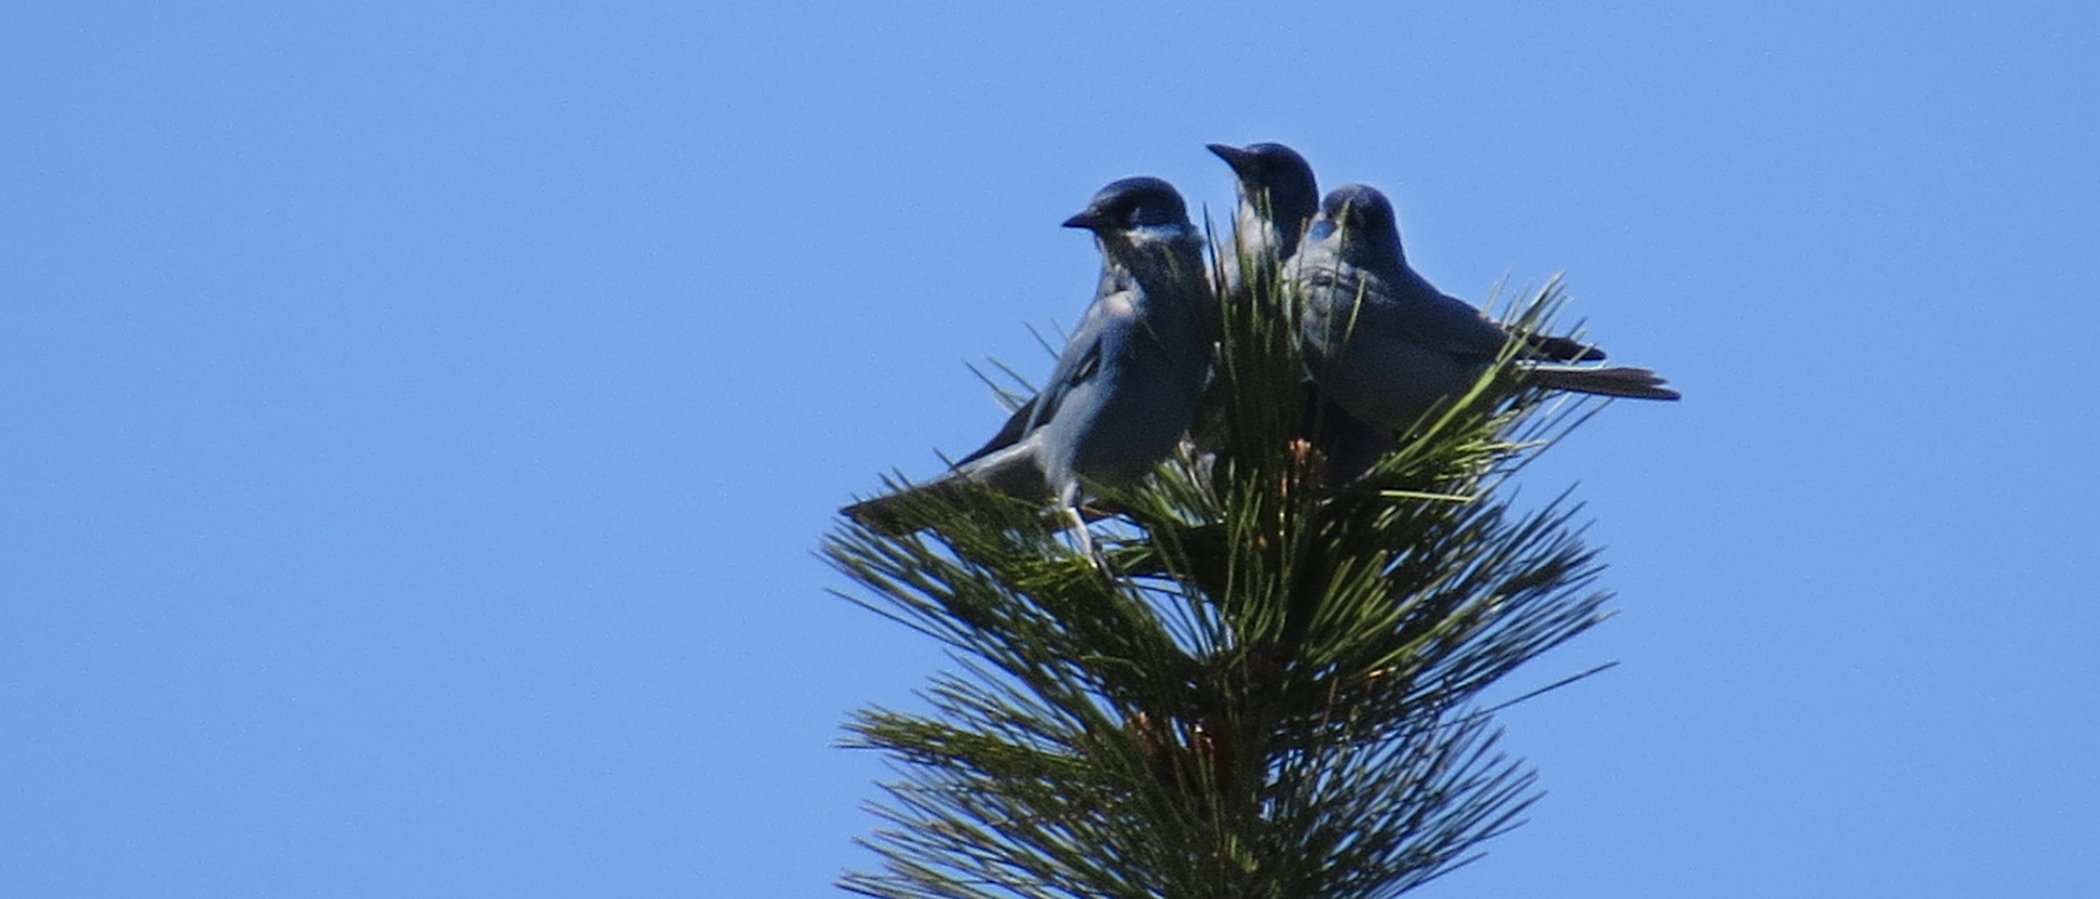 Three blue birds sit on the top of a pine branch against a clear blue sky.